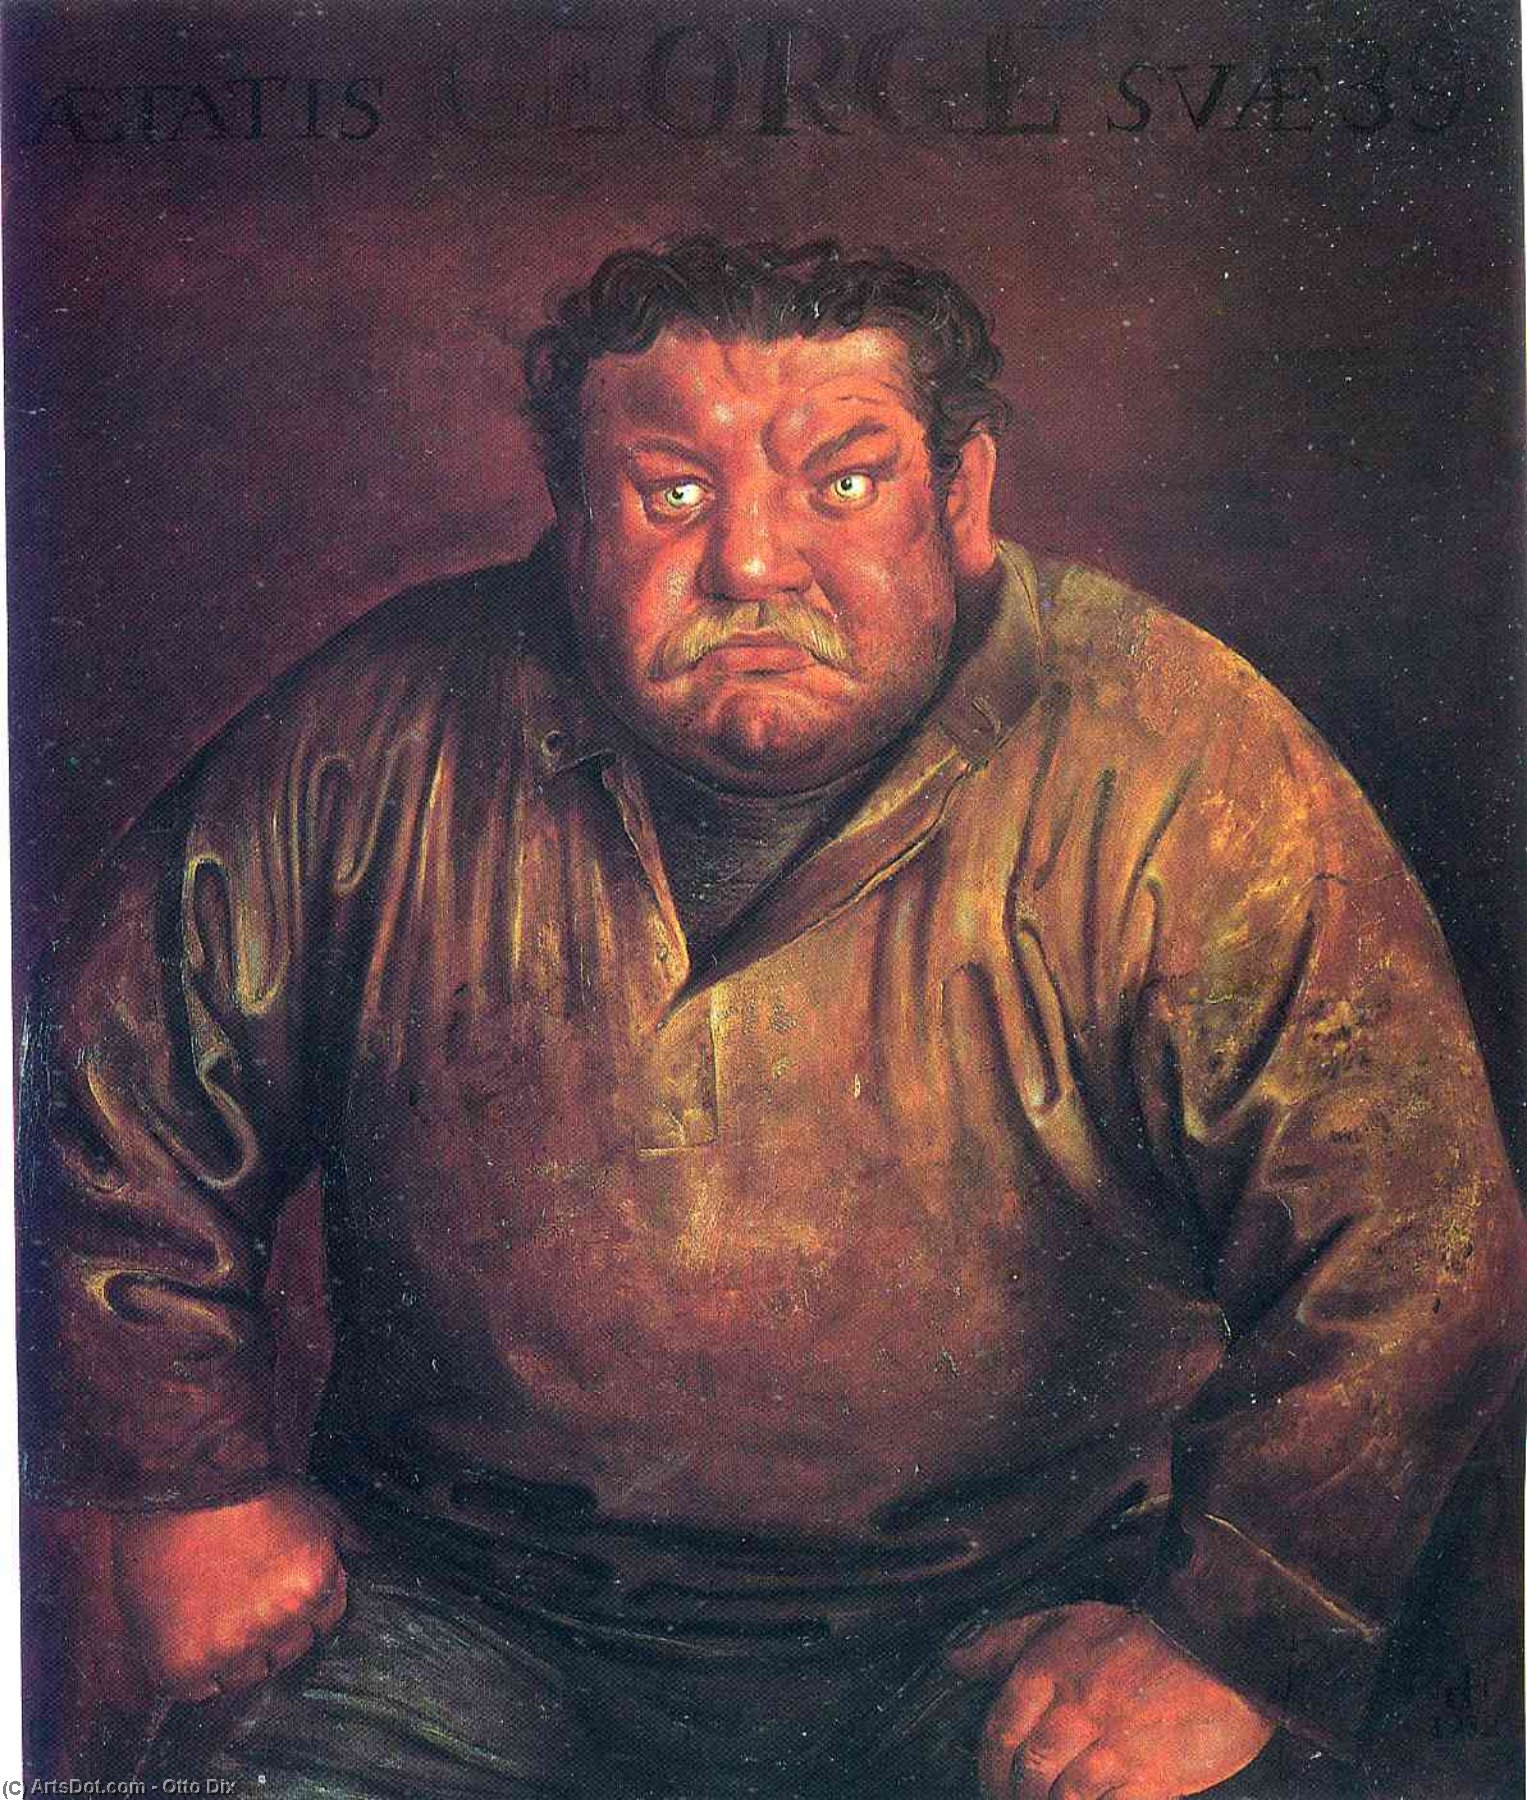 Wikioo.org - The Encyclopedia of Fine Arts - Painting, Artwork by Otto Dix - Portrait of Heinrich George